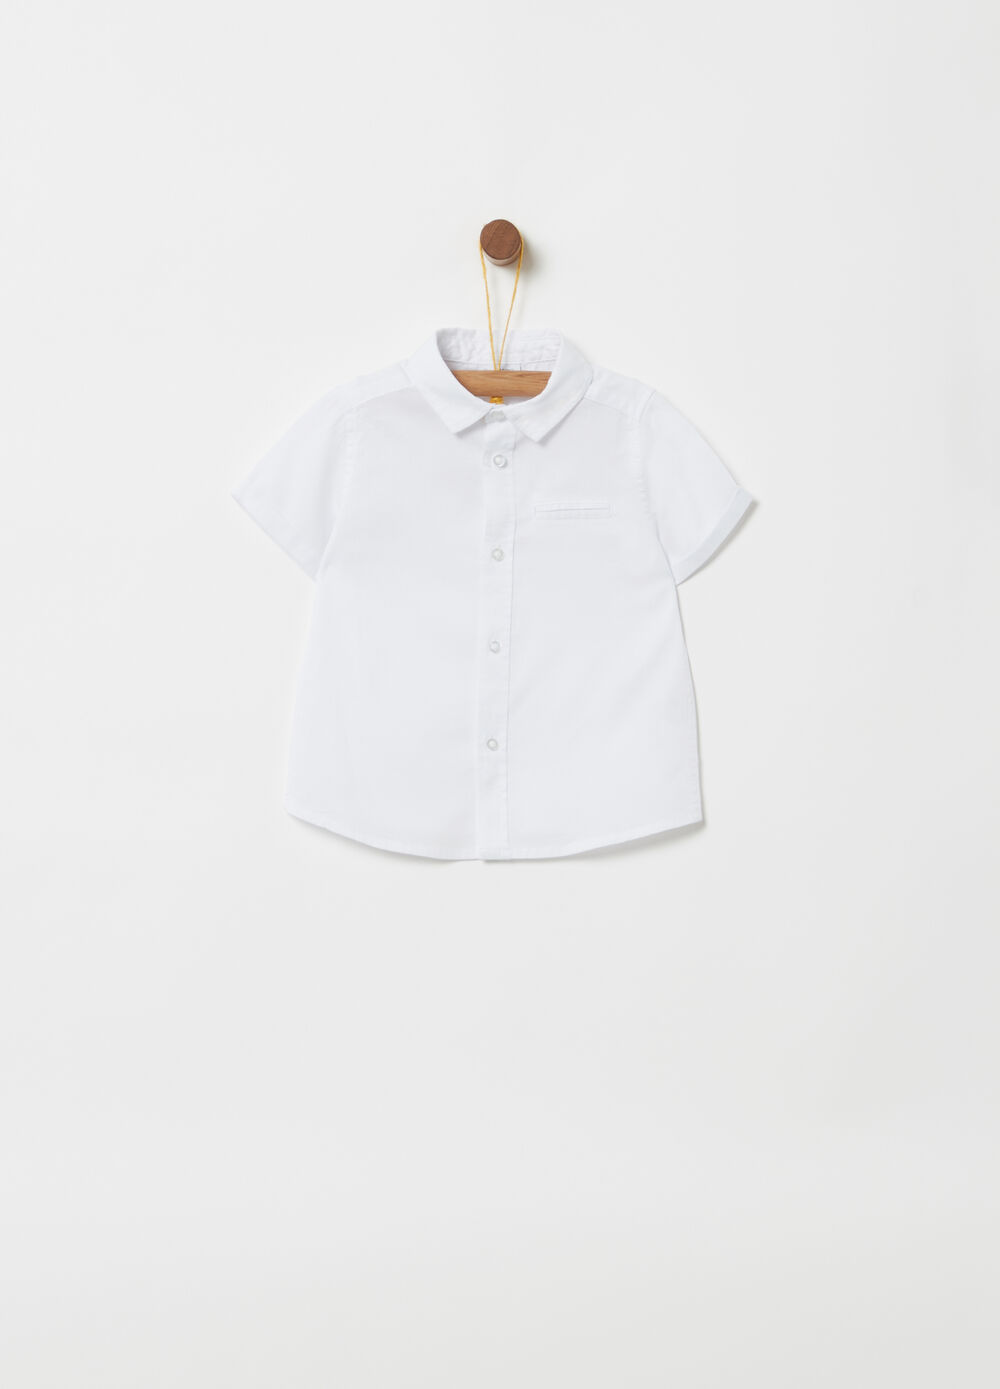 Short-sleeved shirt with pocket